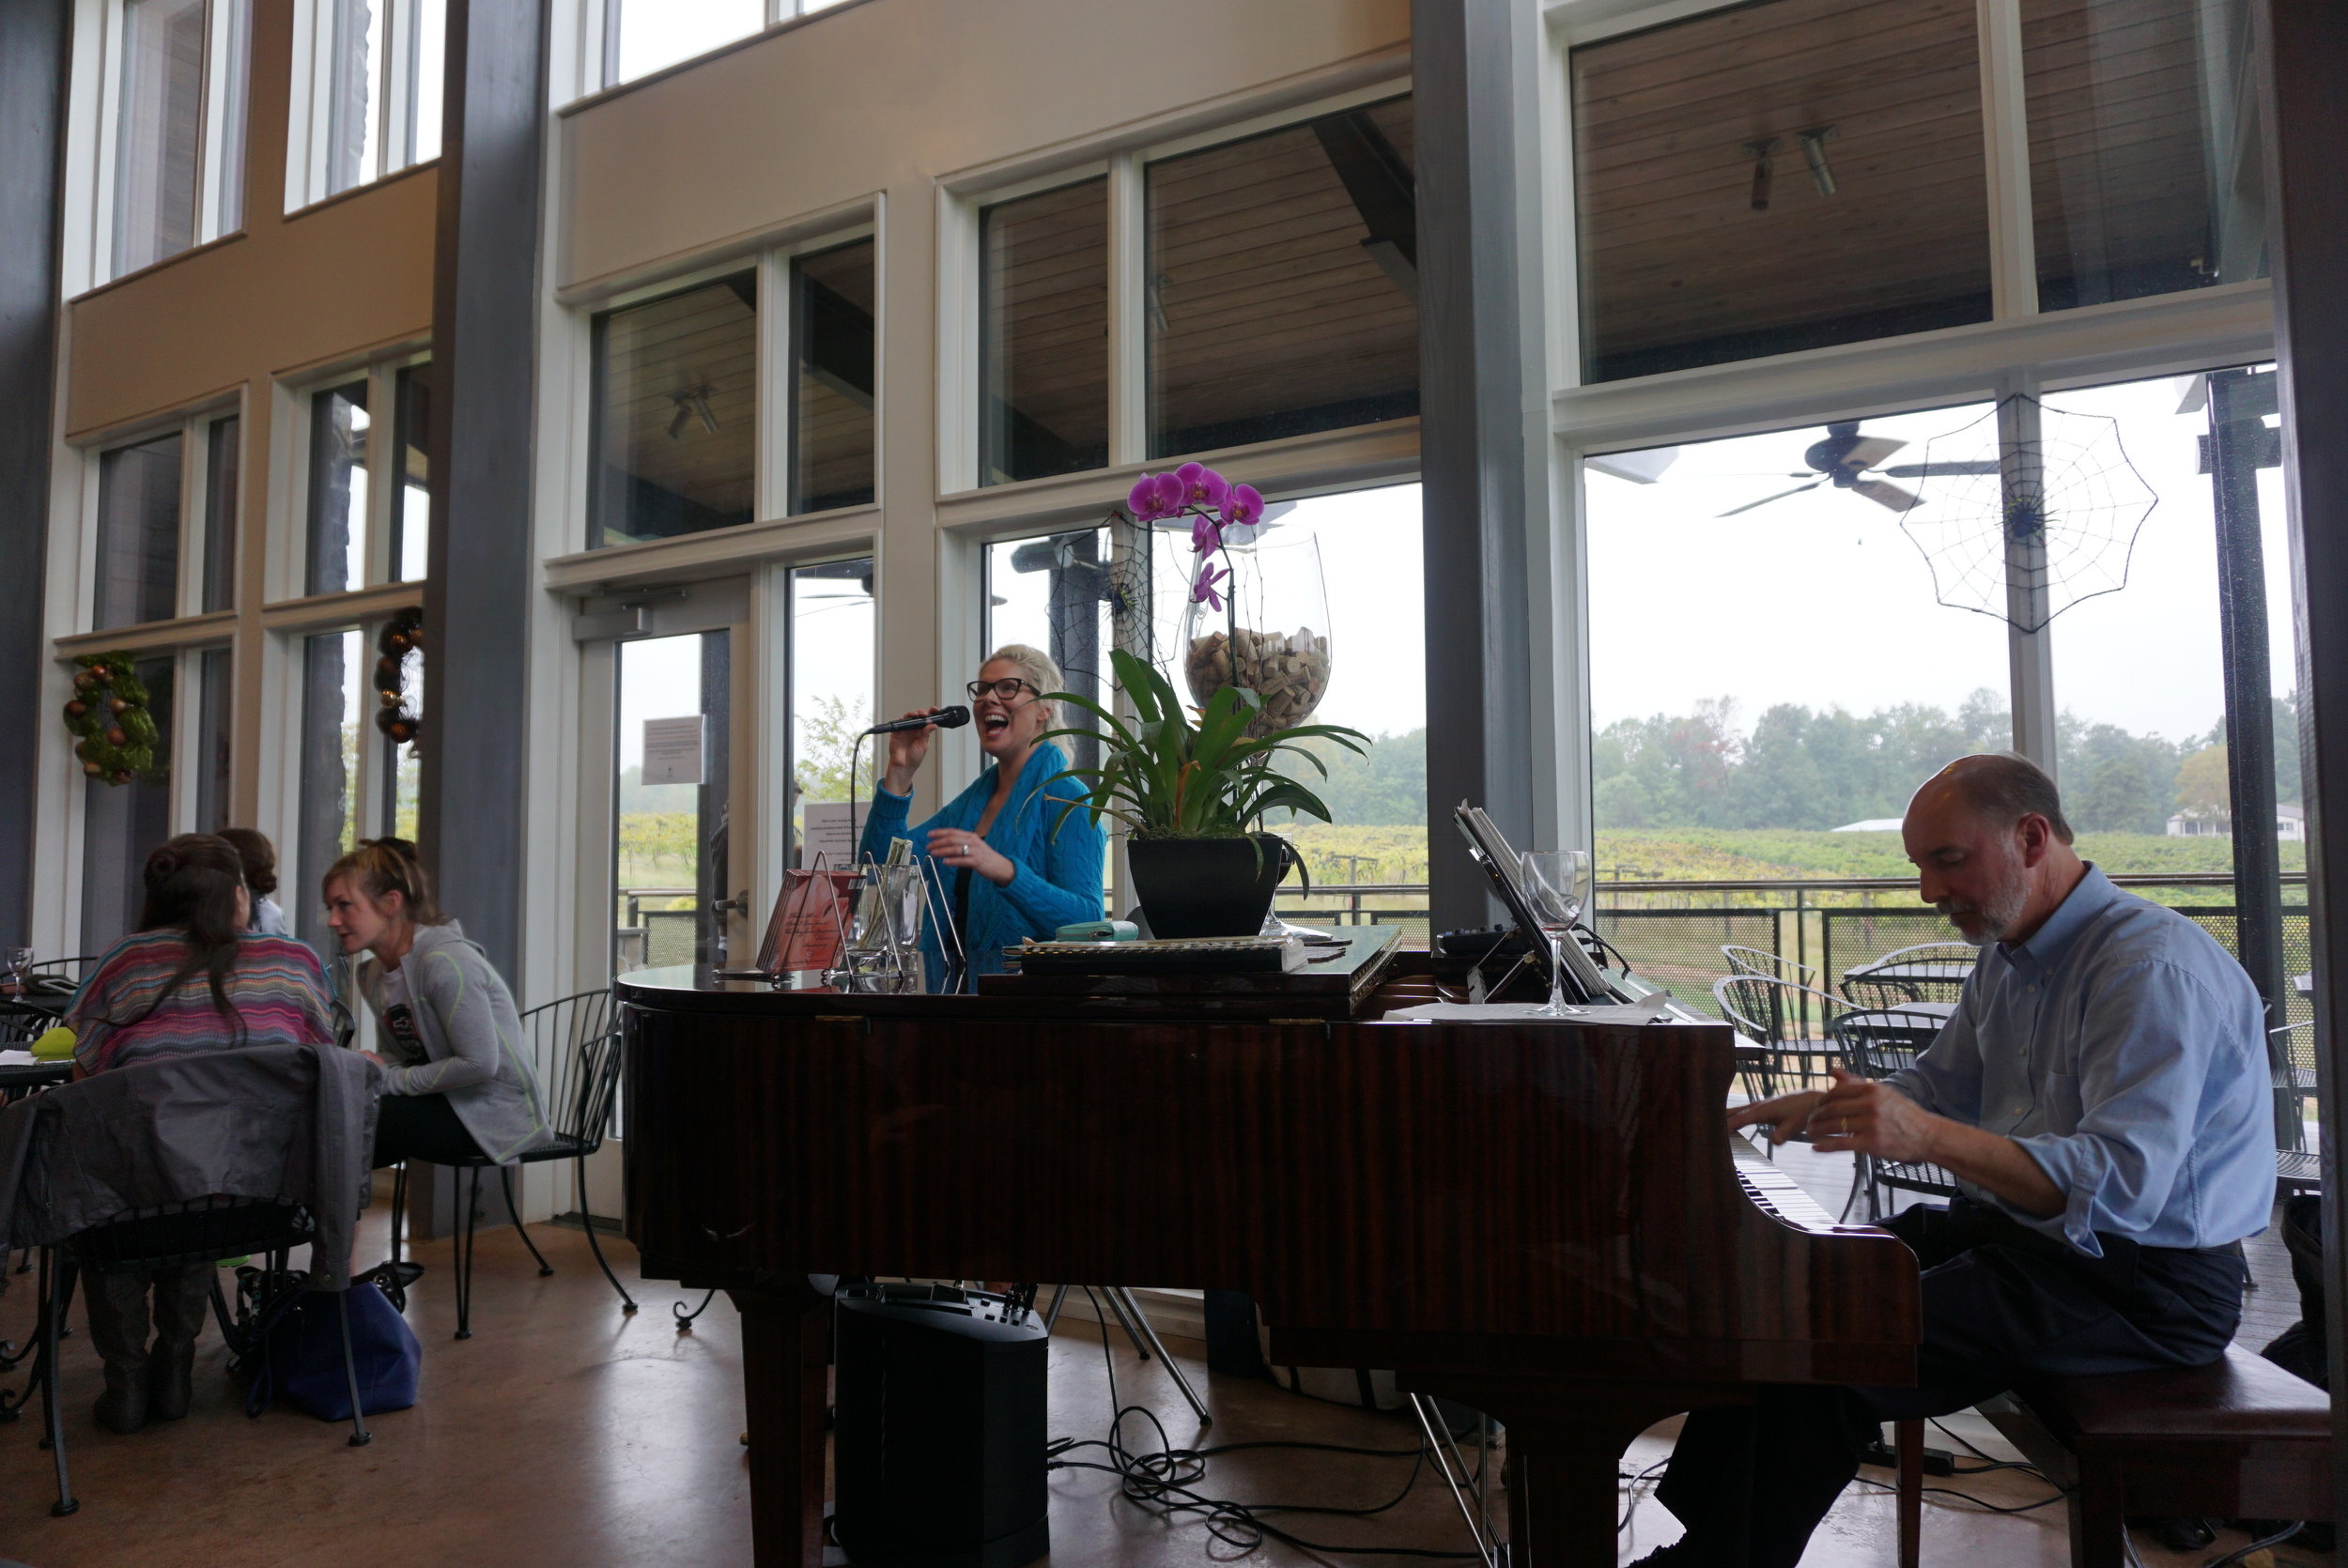 The fantastic chops of live jazz musicians such as Emme St. James accompany wine sipping at Cooper Vineyards—the first platinum LEED certified winery on the East Coast. Viki Eierdam